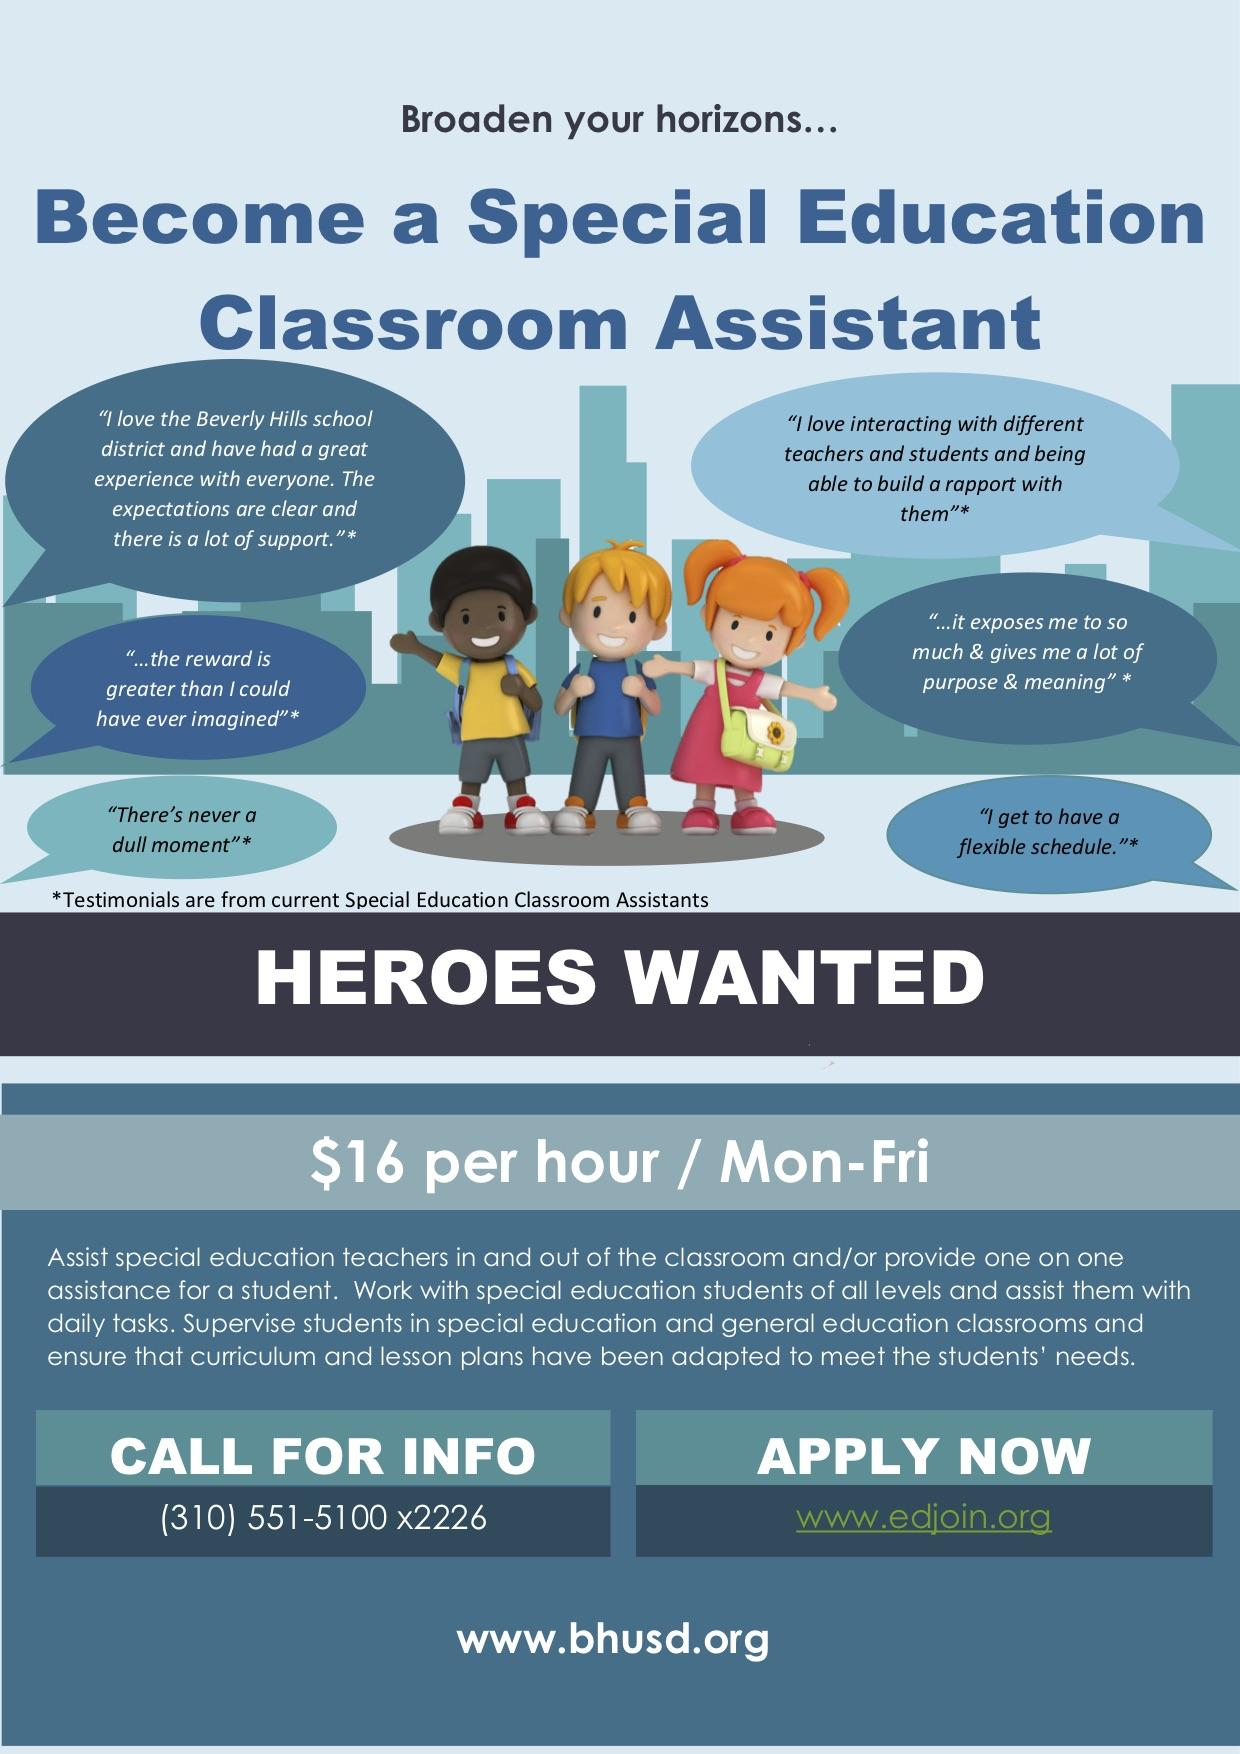 d109c14fdd5 BHUSD Looking For Special Education Classroom Assistants - Apply Now!